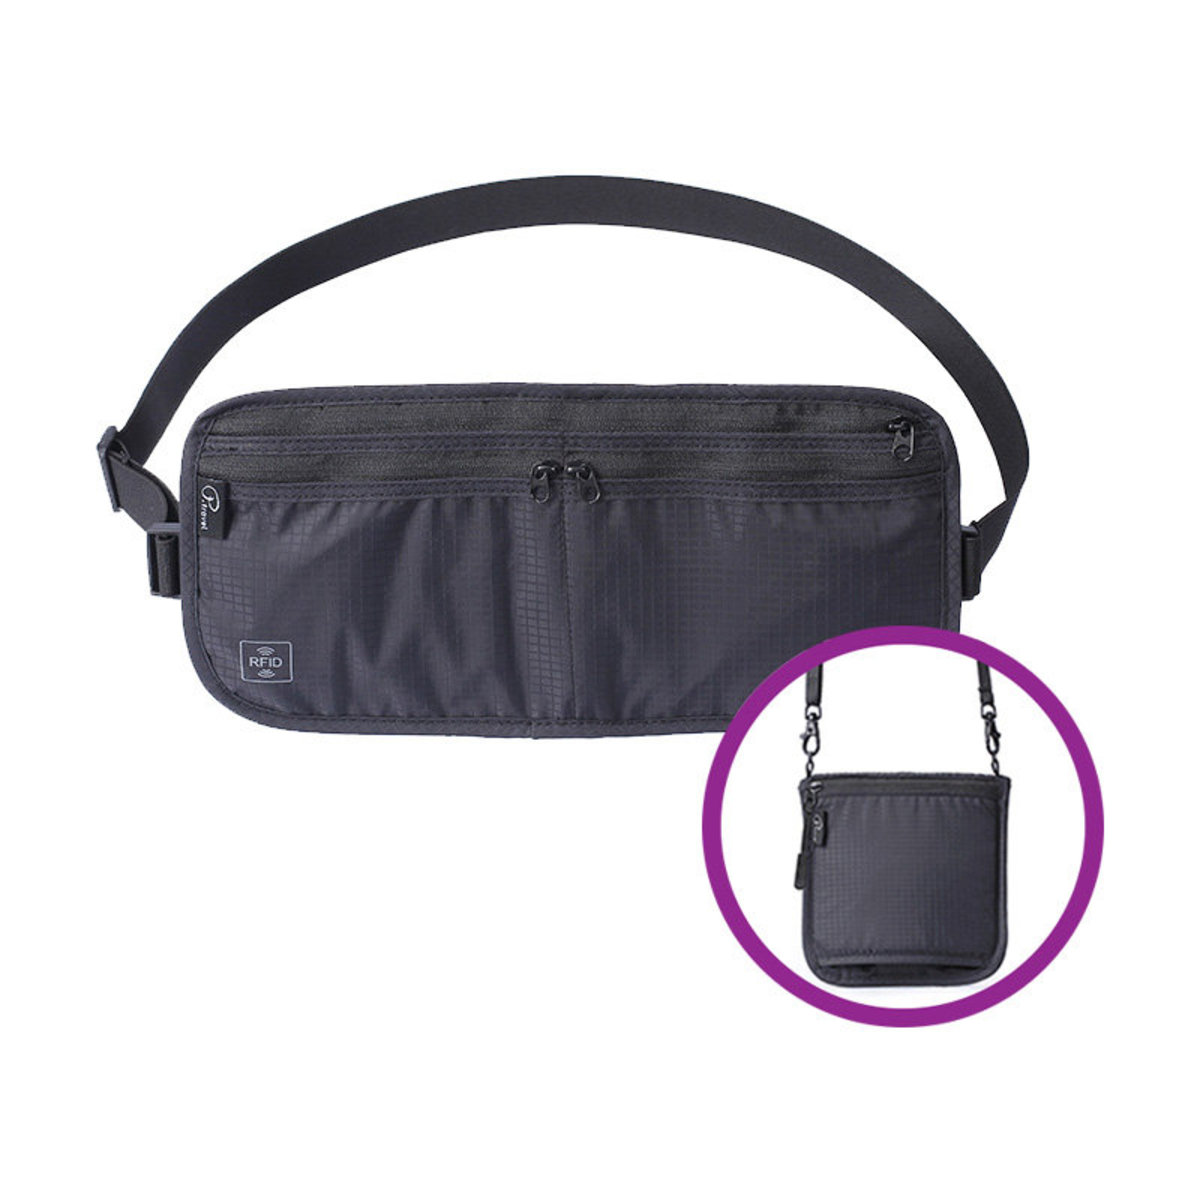 RFID invisible security bag 2-way